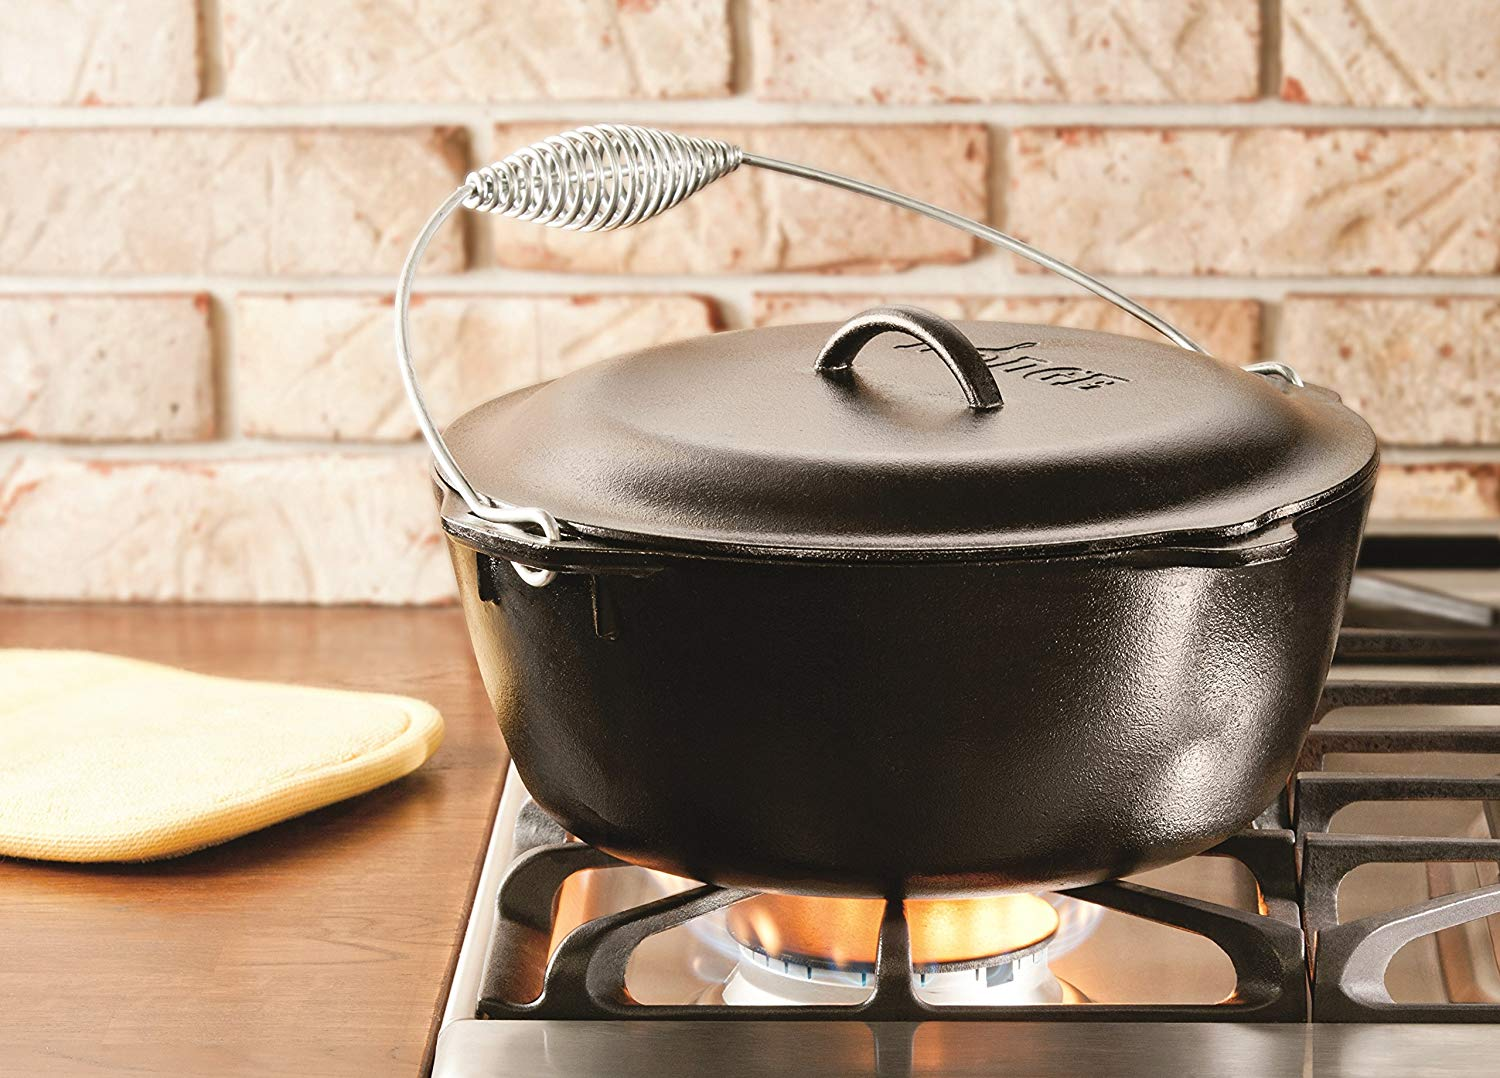 Lodge L10DO3 7-Quart, Pre-Seasoned Cast-Iron Dutch Oven coupled with Iron Cover